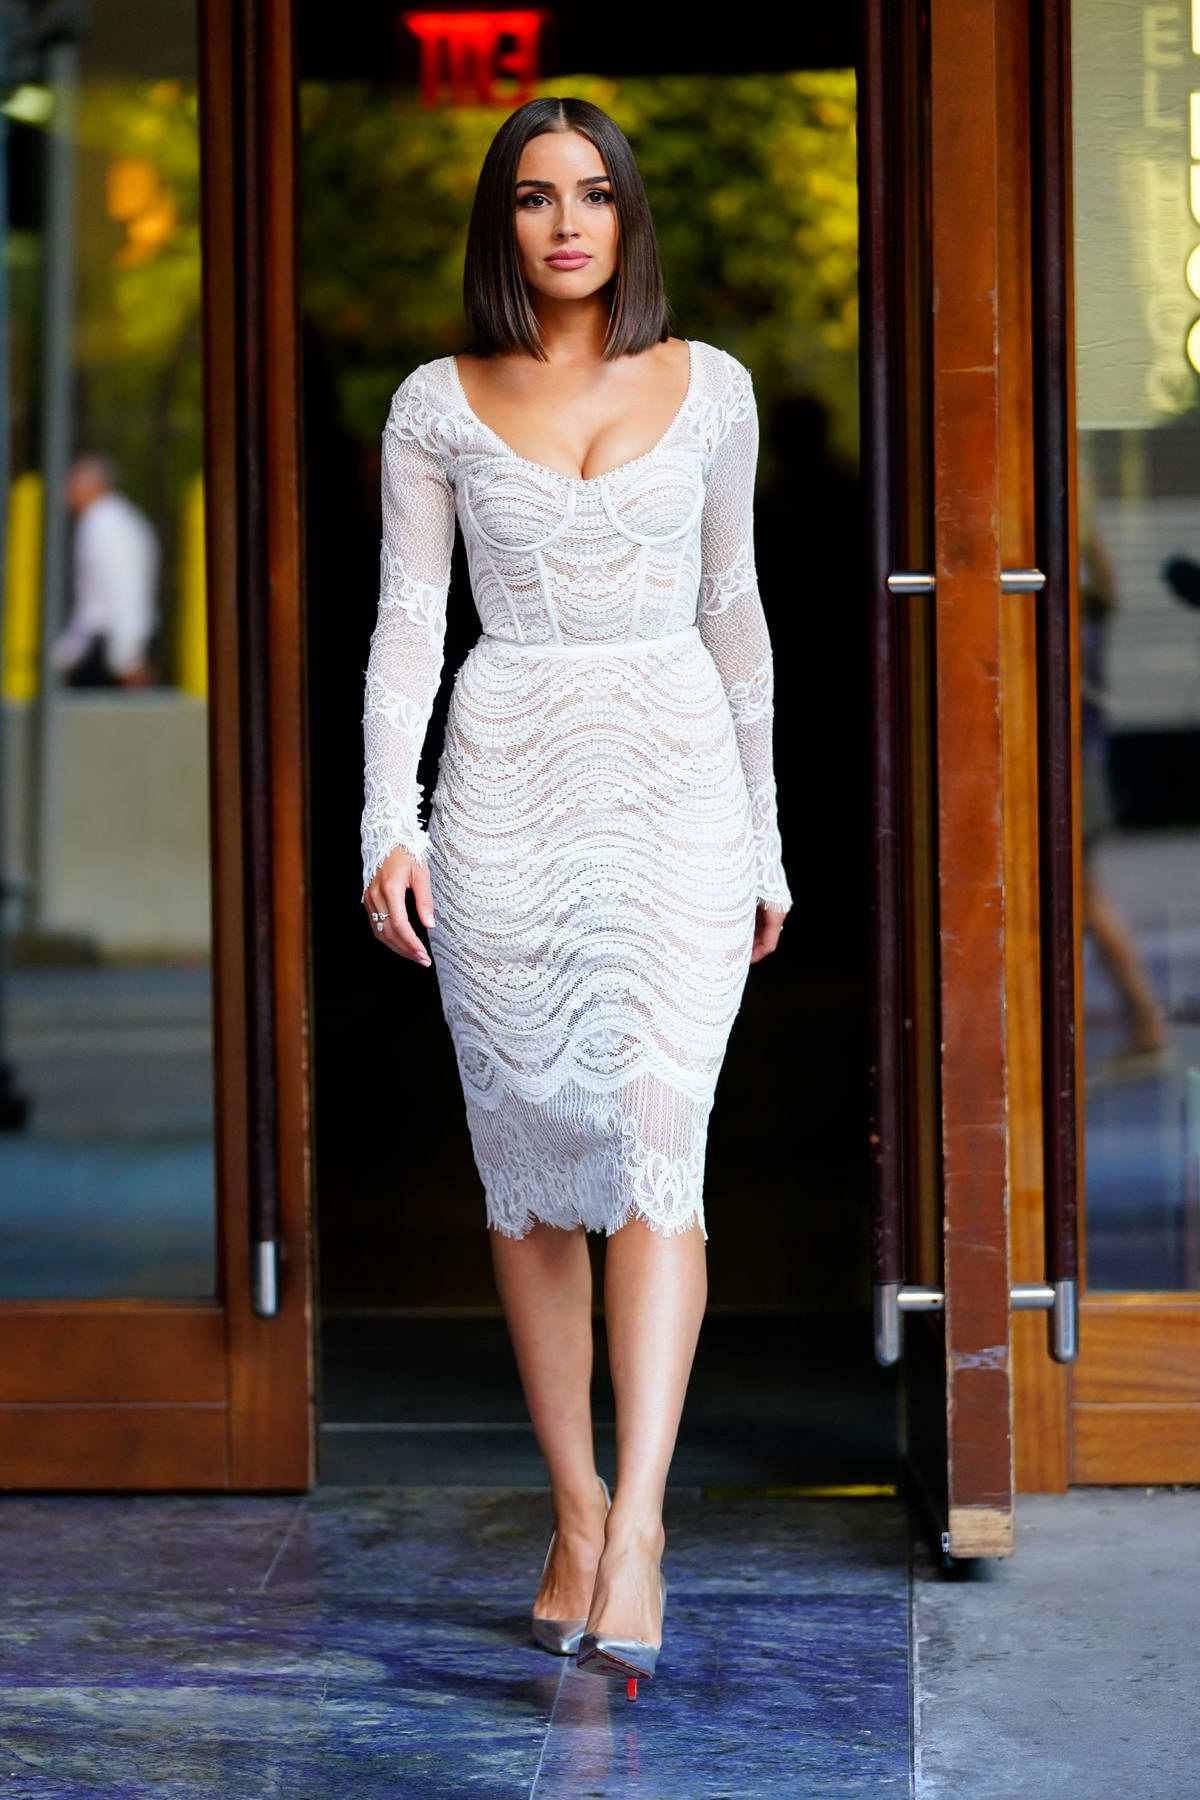 Olivia Culpo wears a formfitting white lace dress as she heads out in New York City